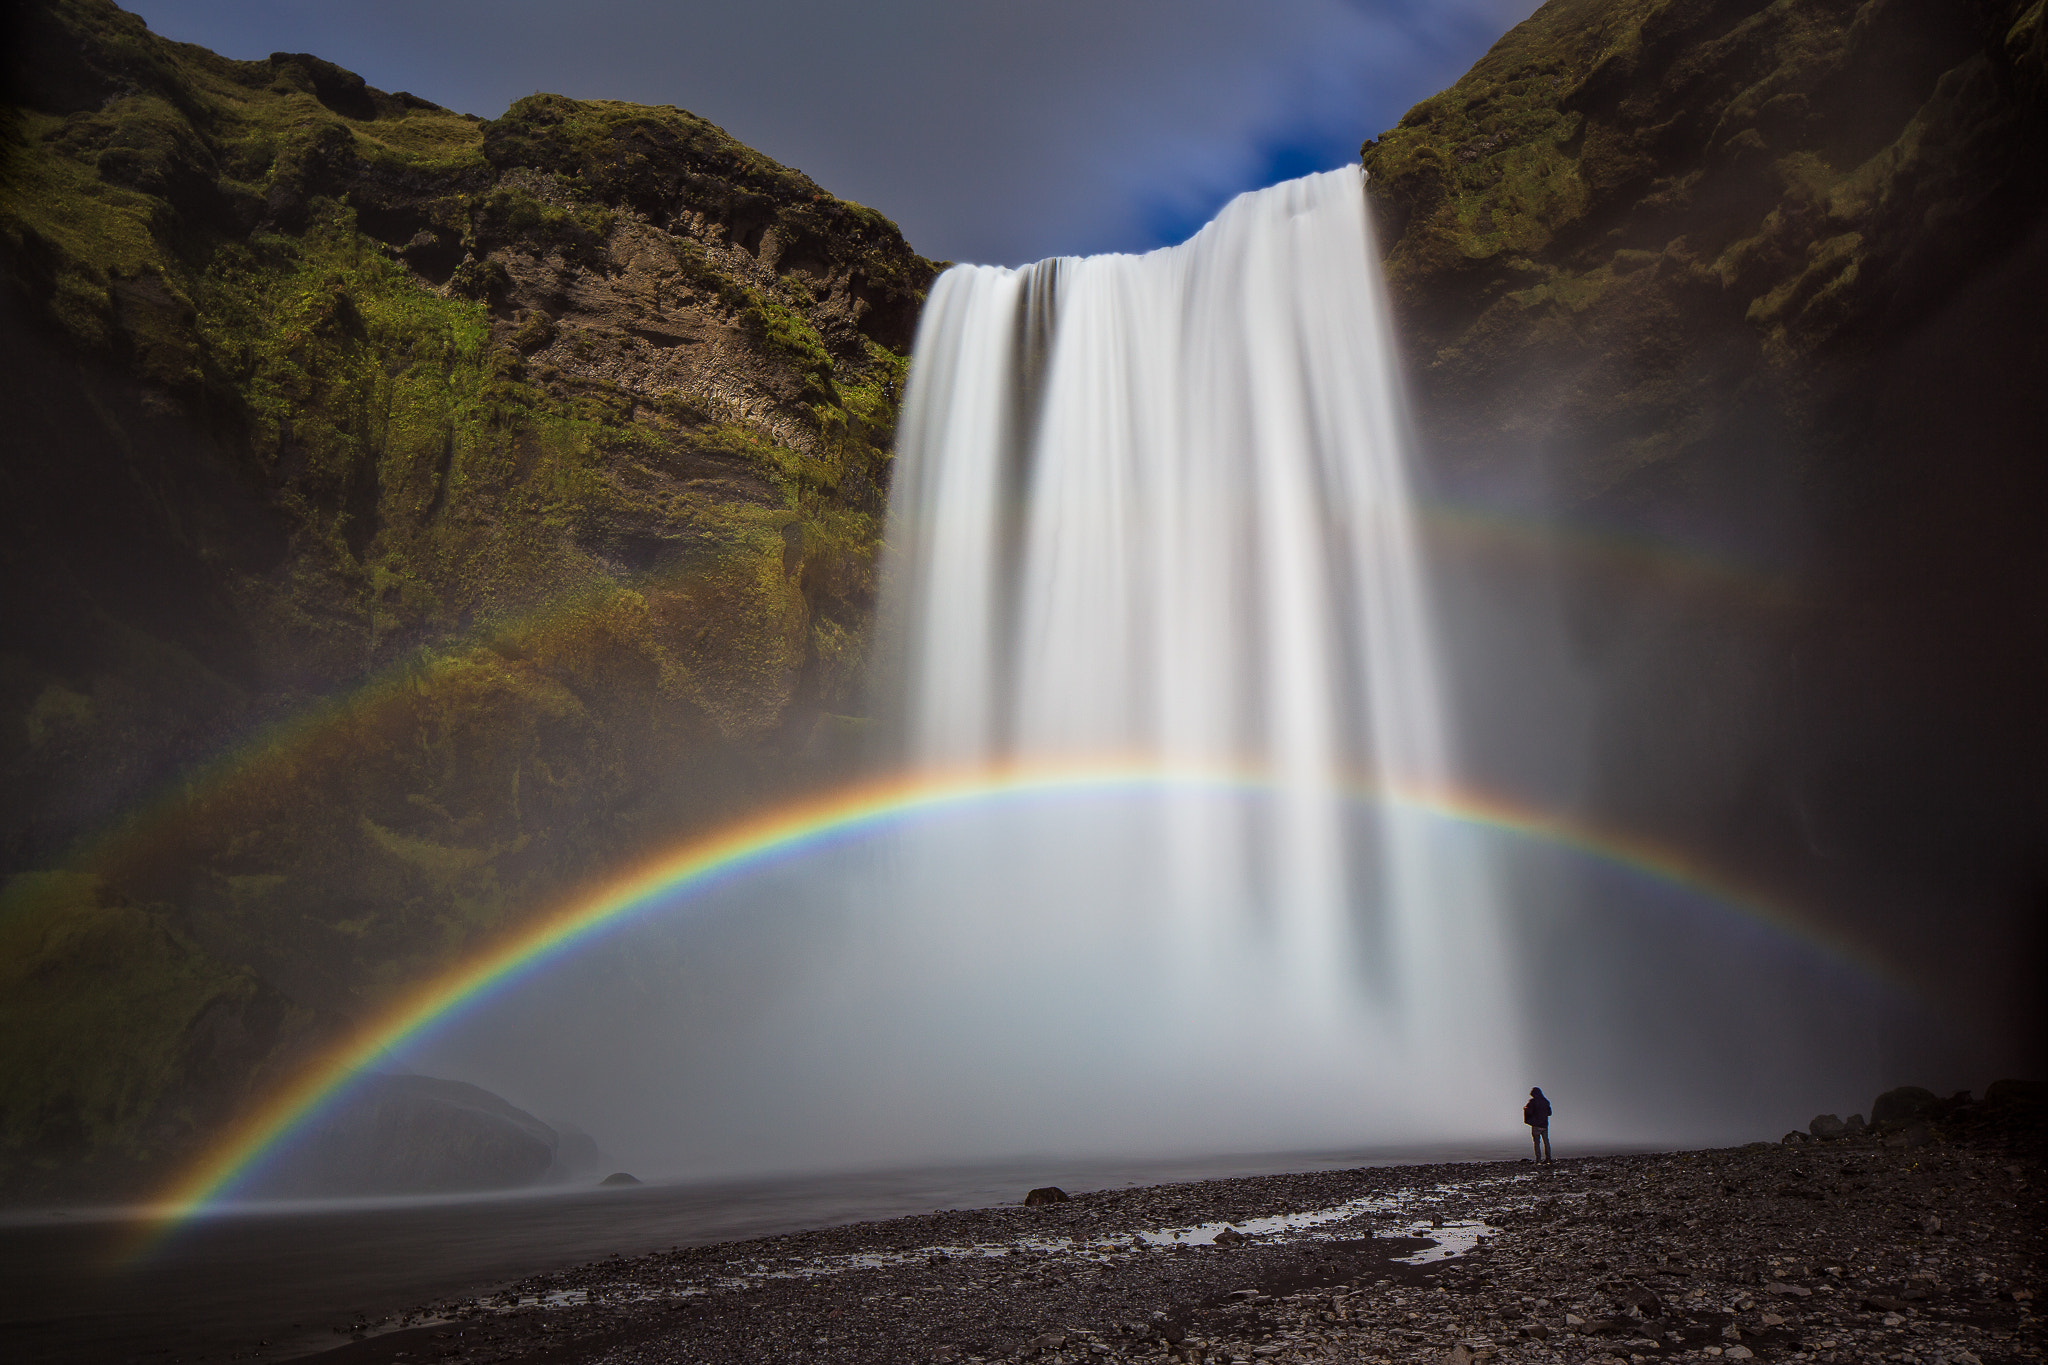 Photograph Double Rainbow Over Skogafoss by Colby Brown on 500px